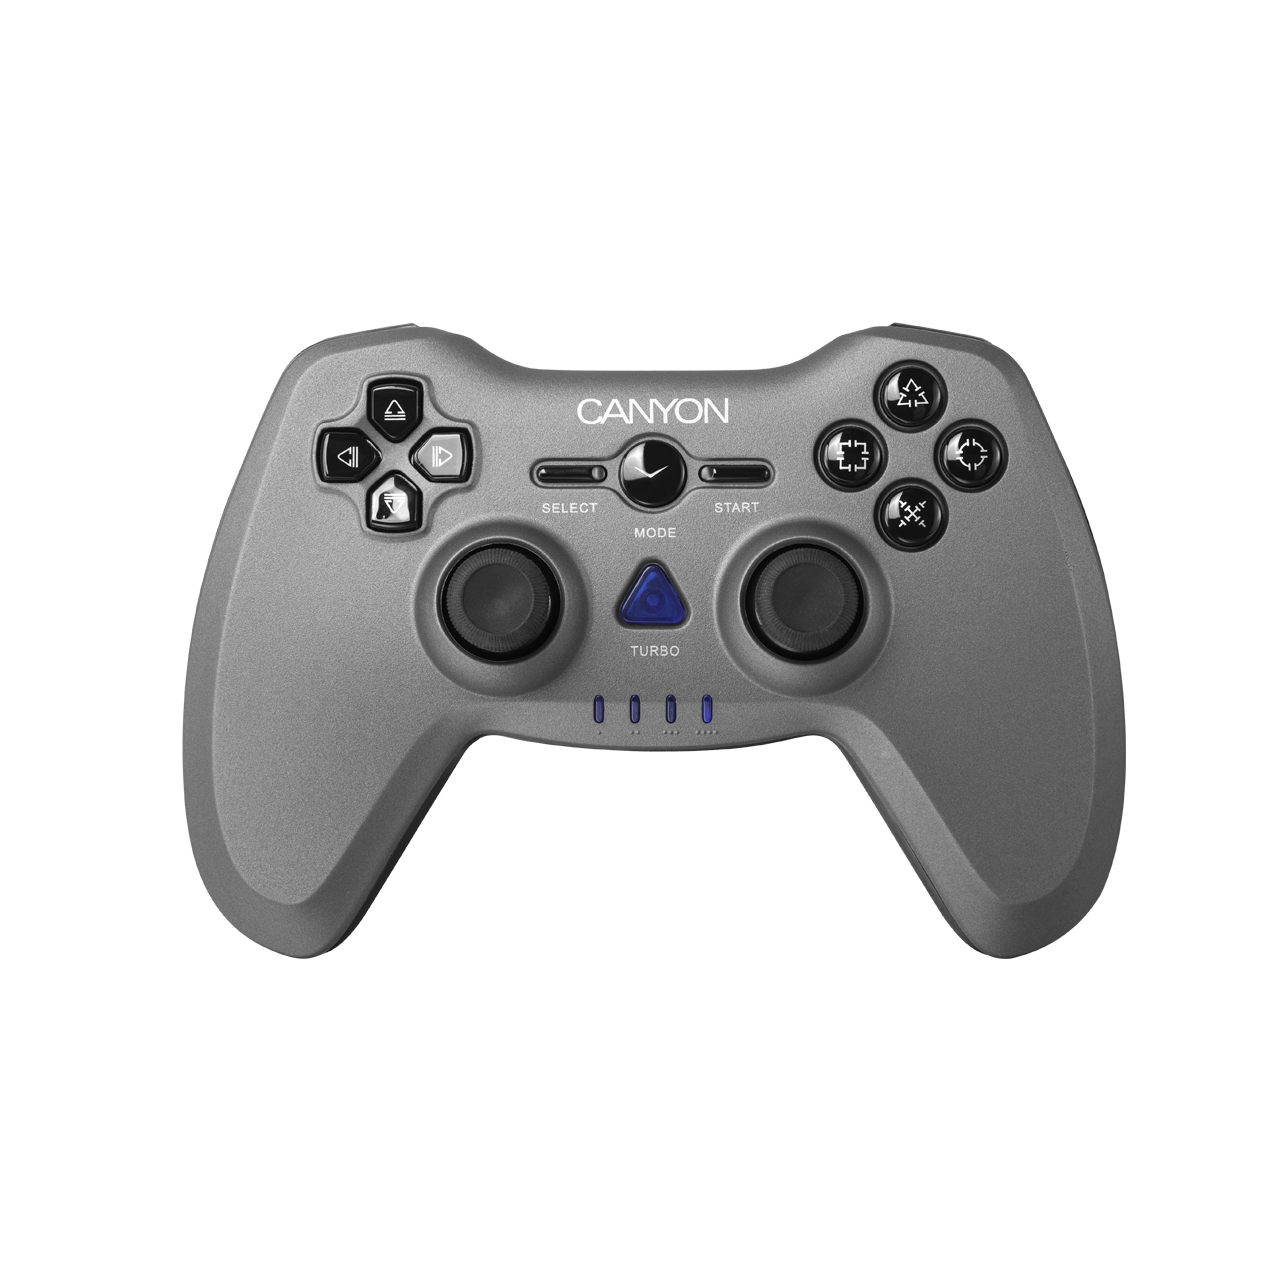 Wireless gamepad (CNS-GPW6) - Canyon